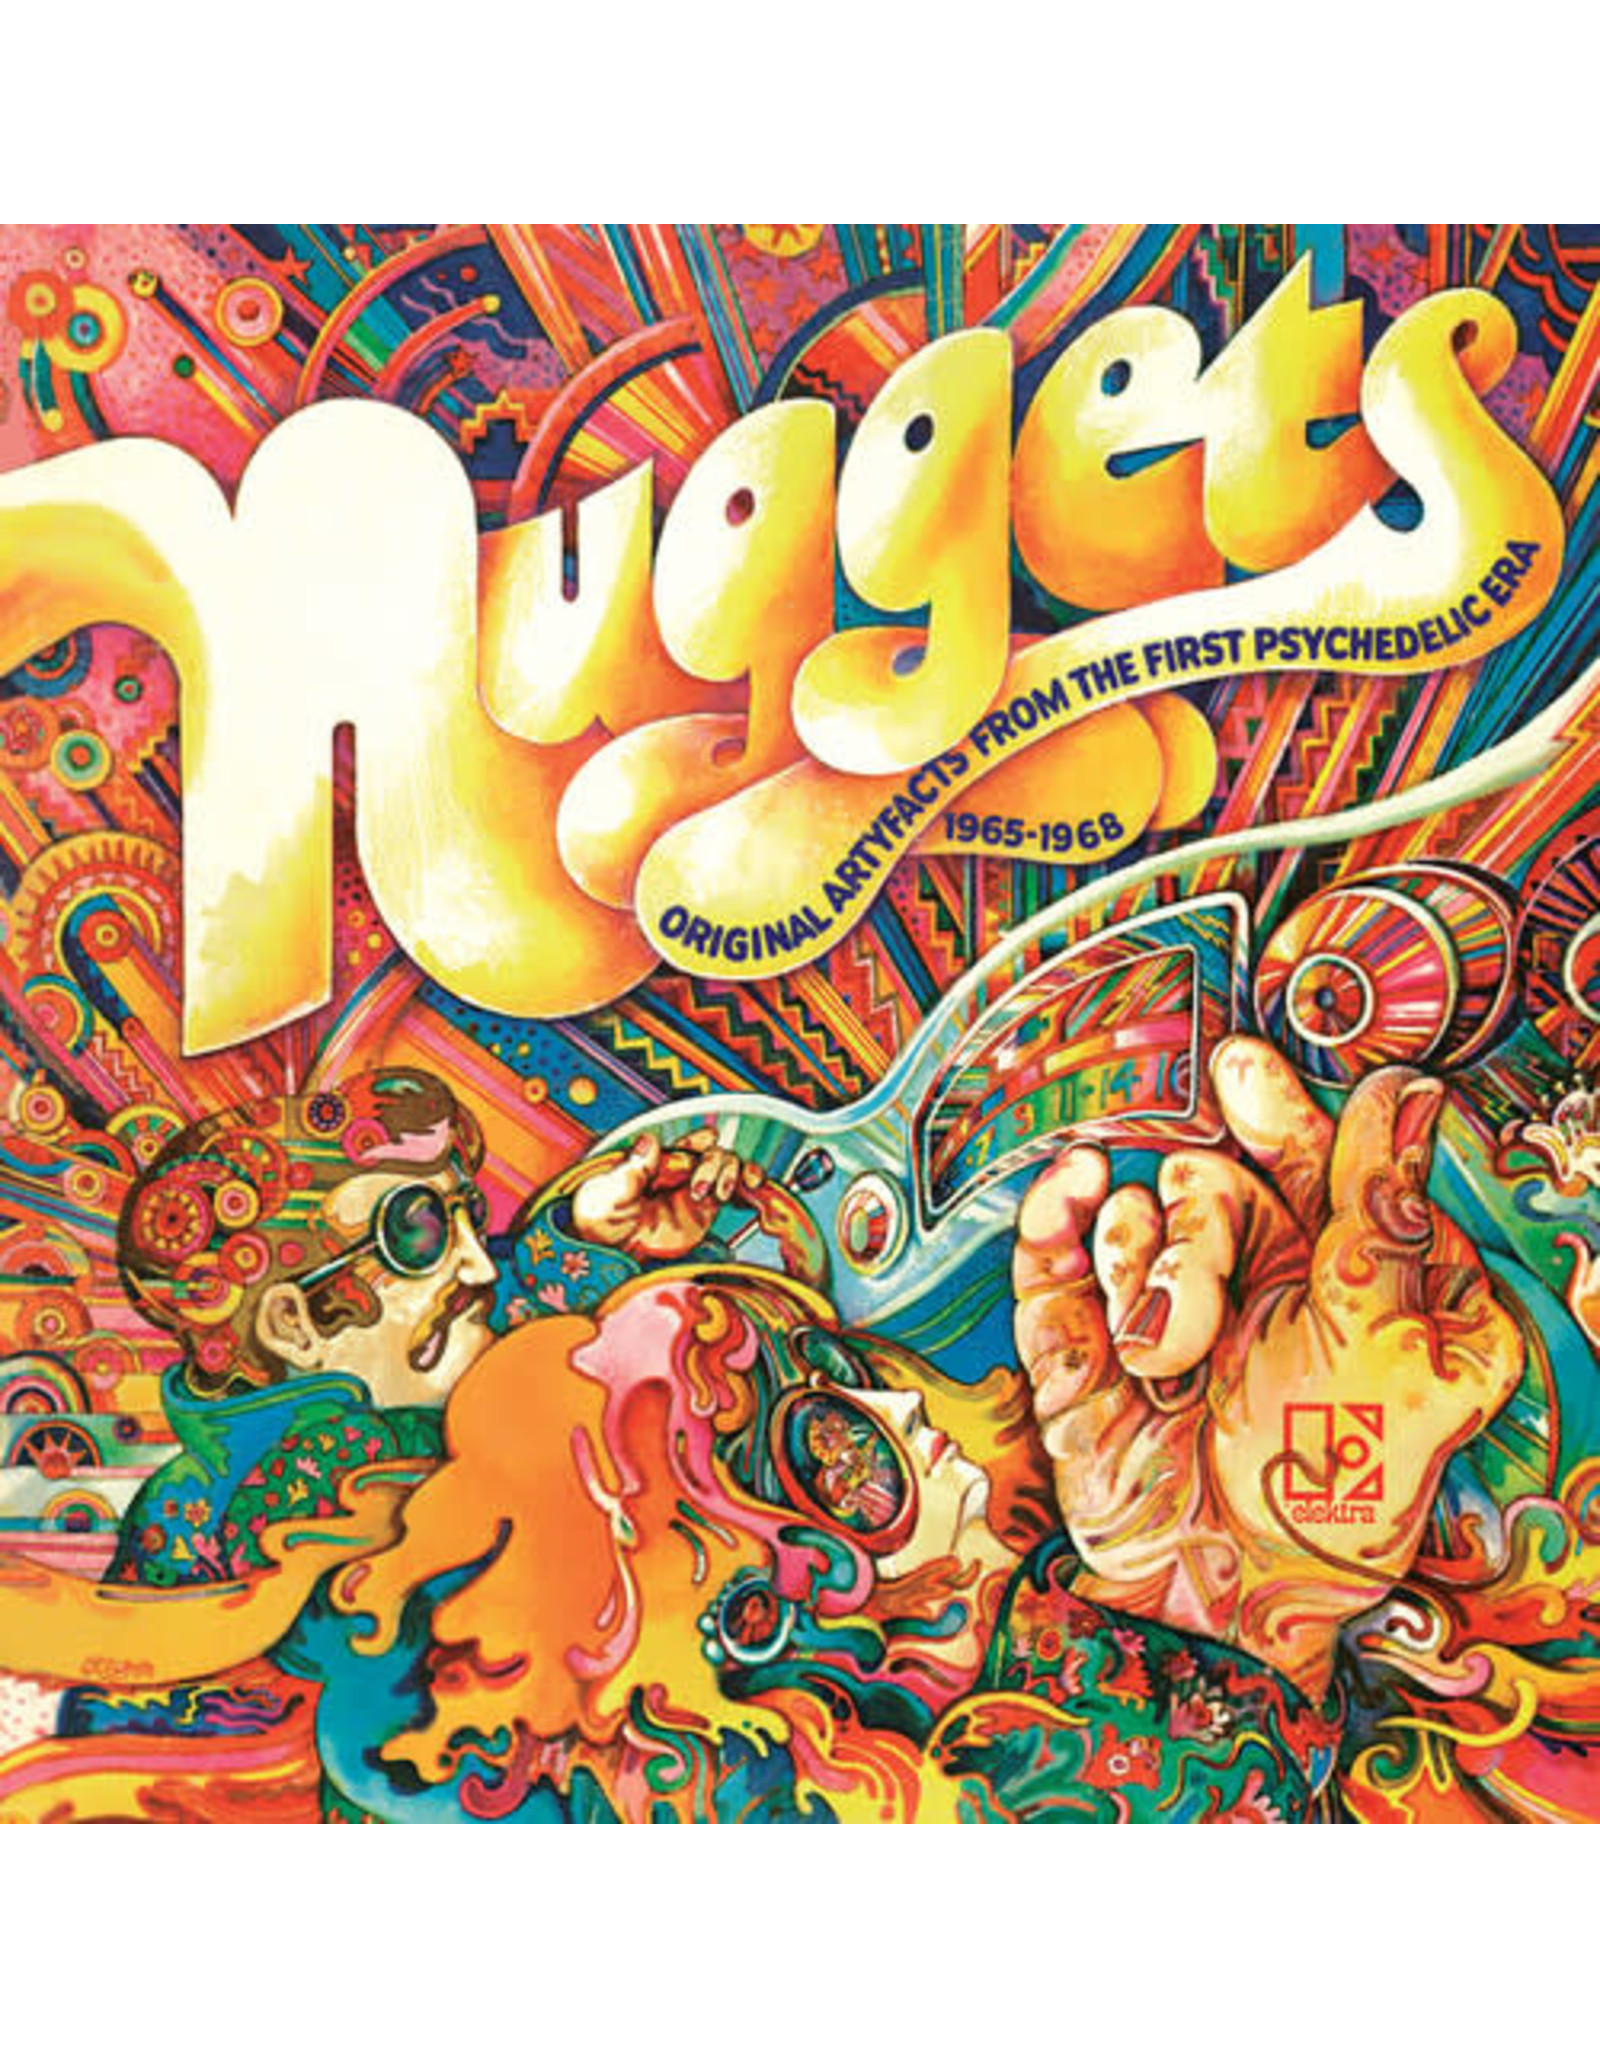 New Vinyl Various - Nuggets: Original Artyfacts From The First Psychedelic Era 1965-1968 2LP